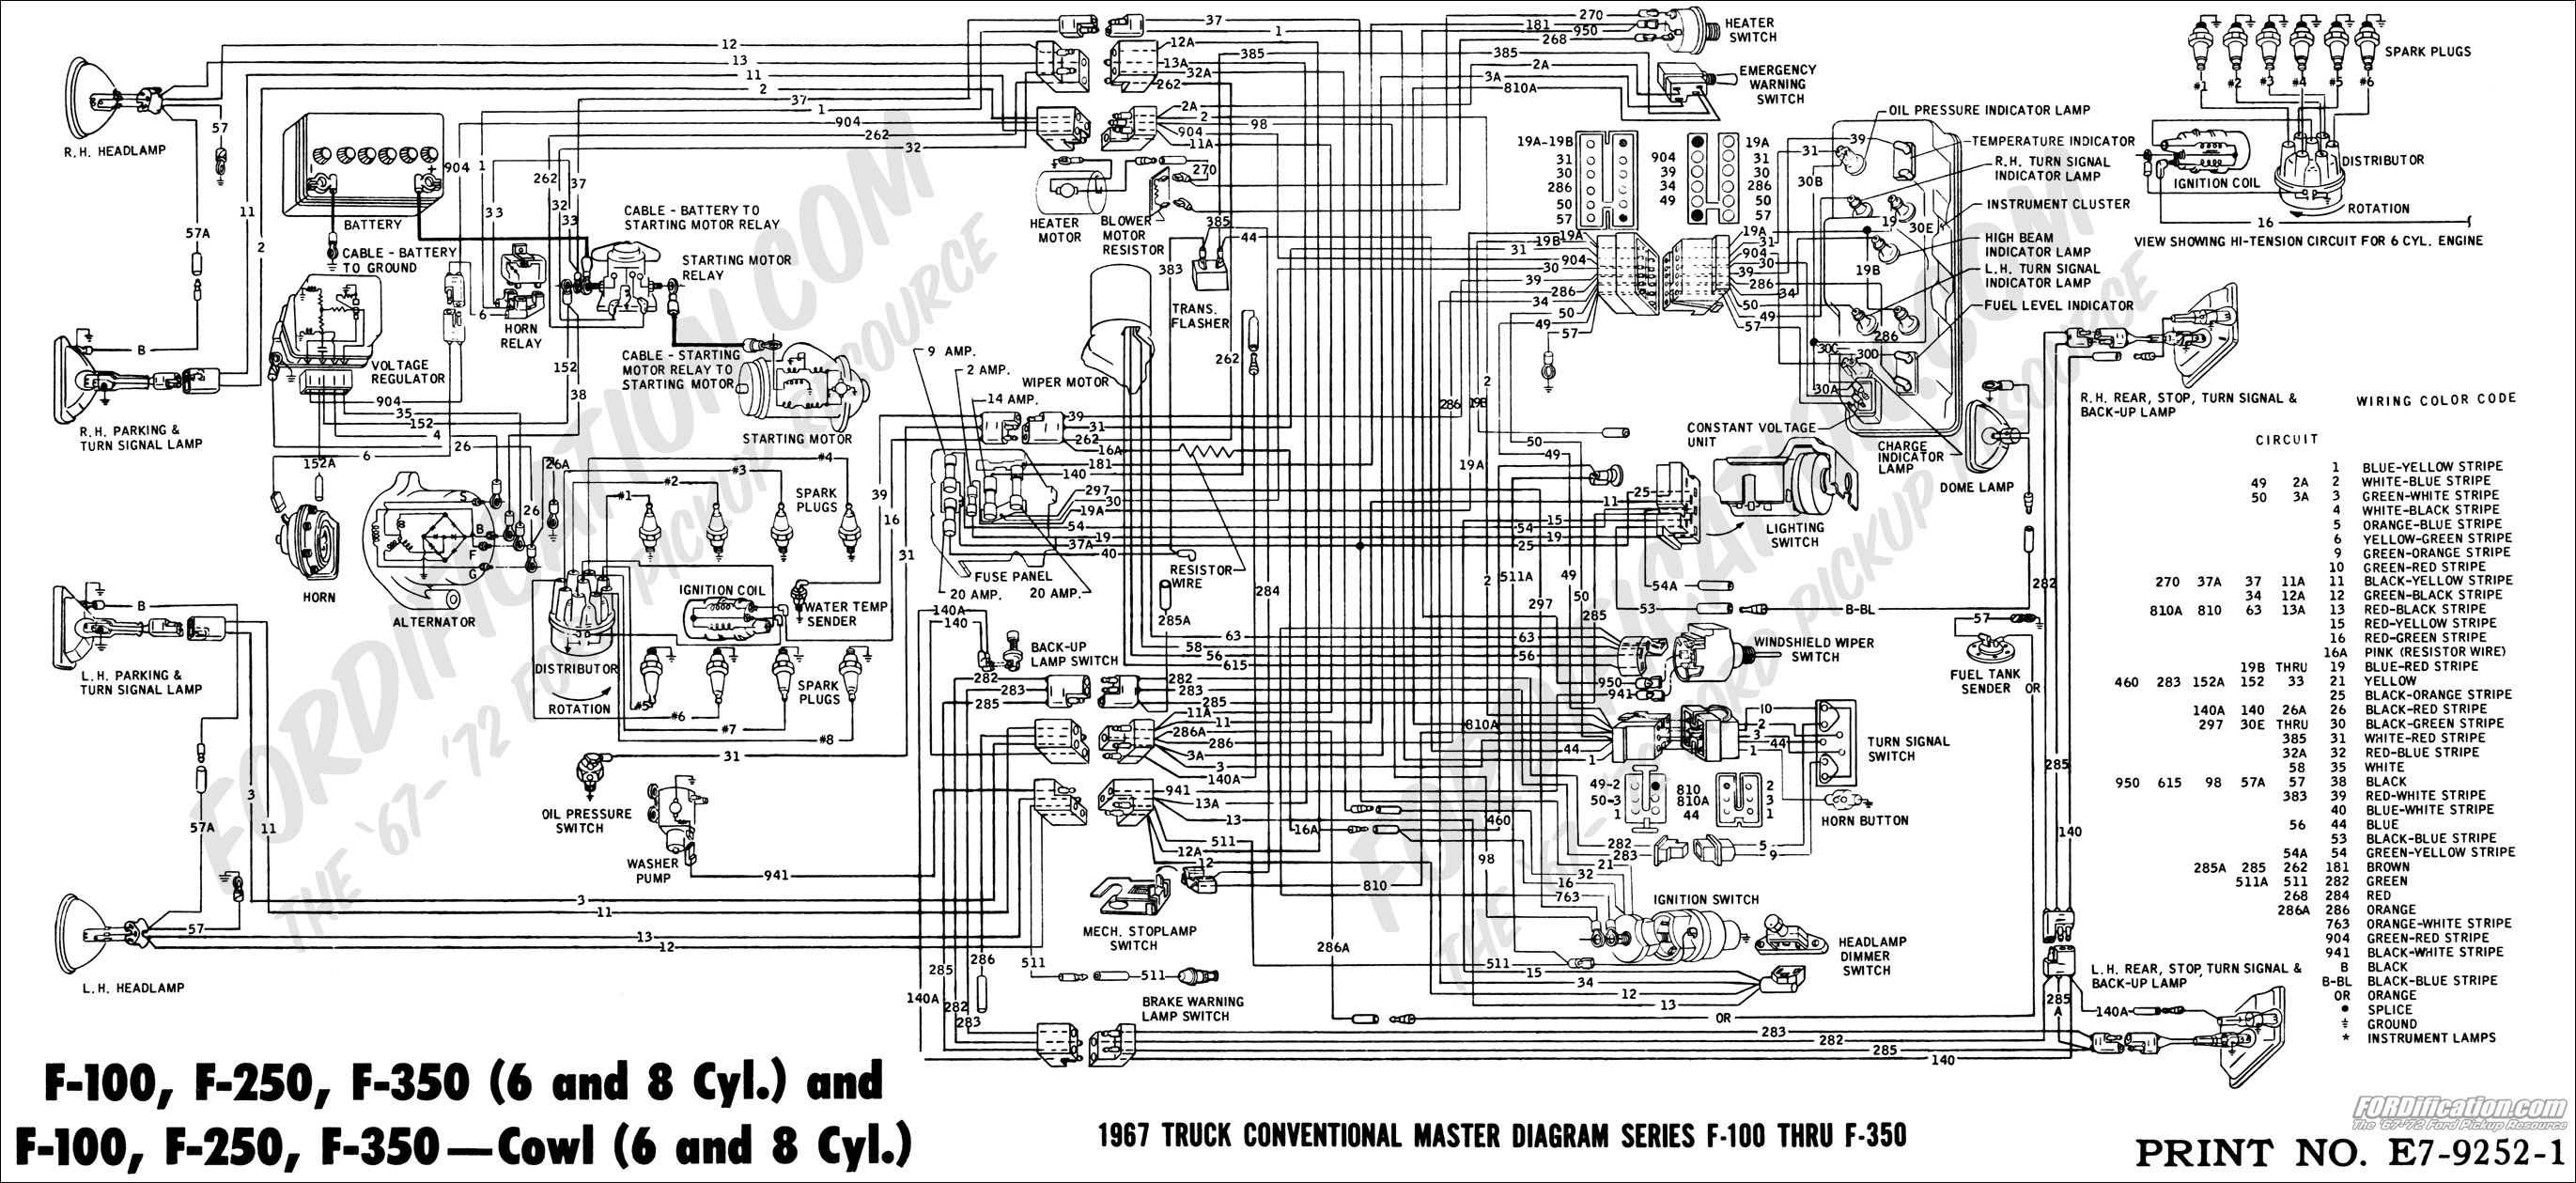 wire diagram 95 ford probe se wiring library rh 82 radiodiariodelhuila co